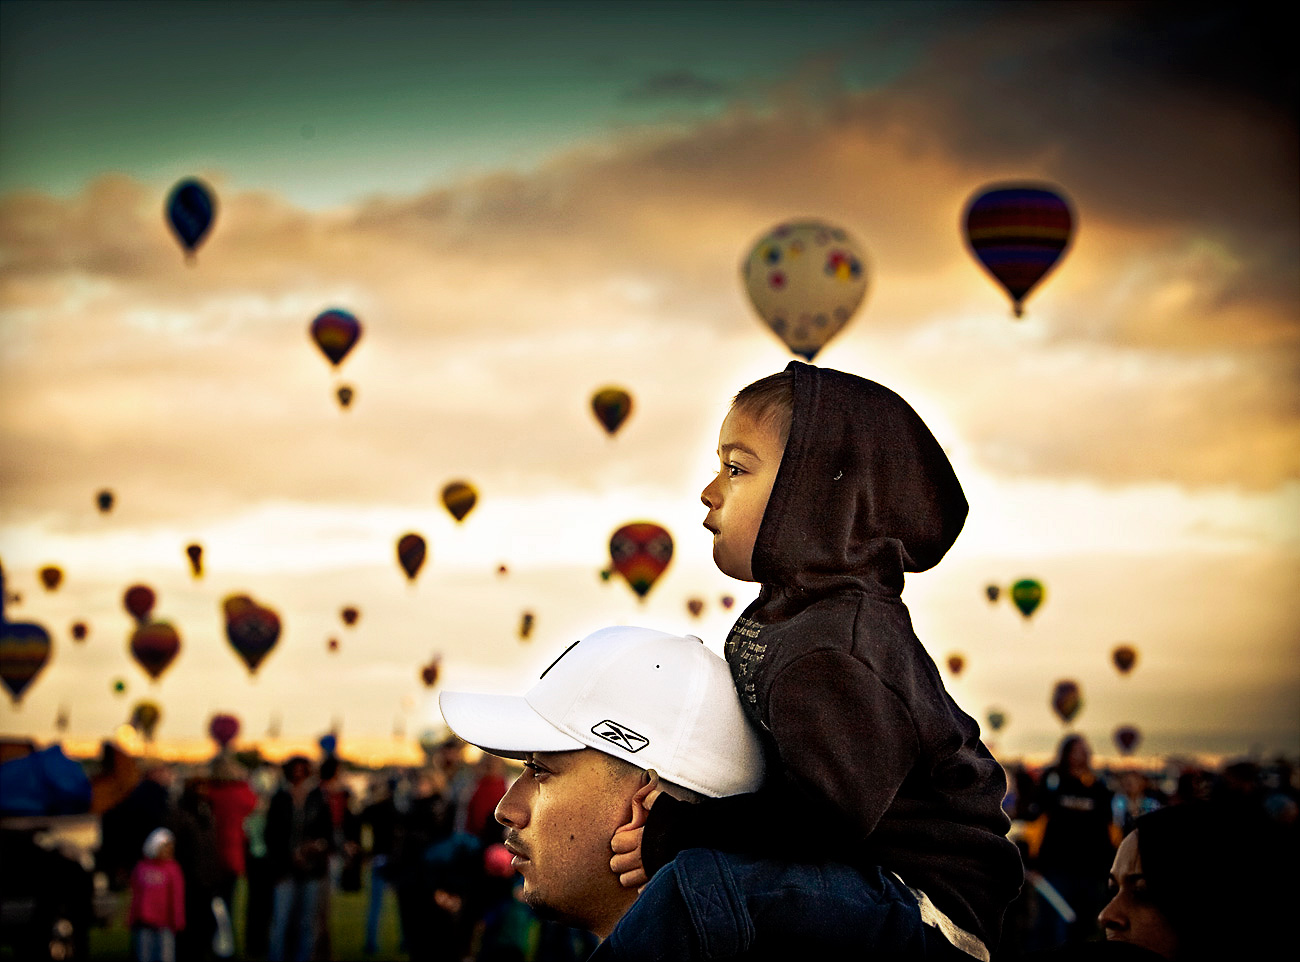 Balloon Fiesta, Early Morning. Albuquerque NM